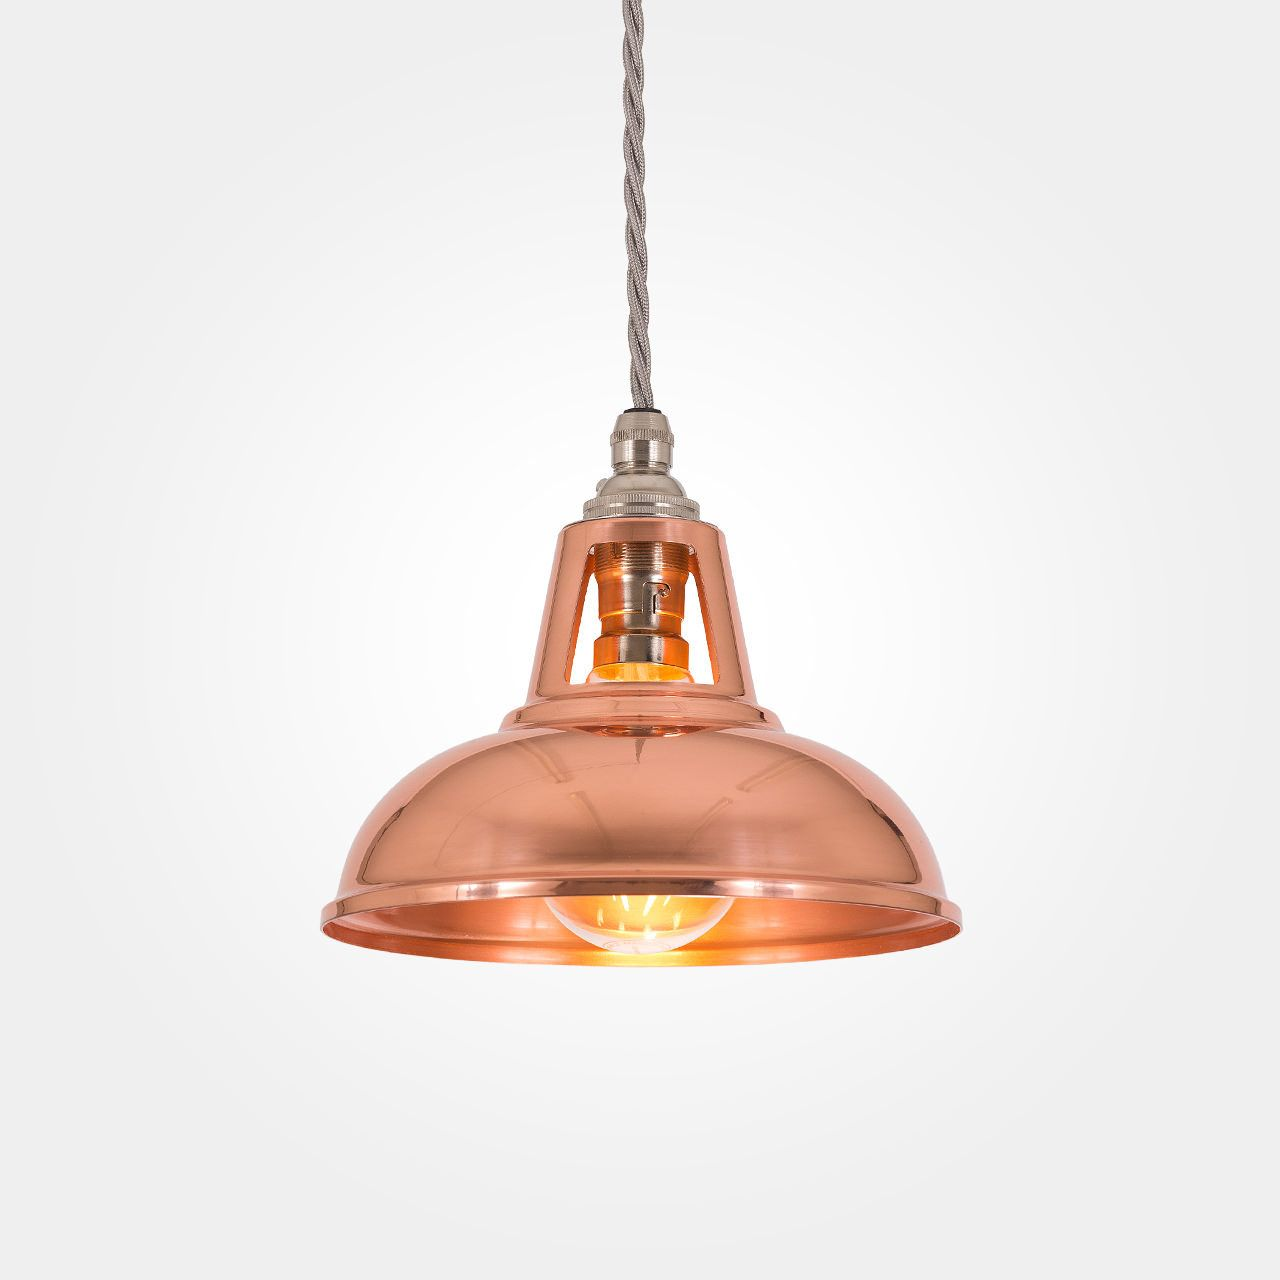 Micro Coolicon Industrial Copper Pendant Light Pendant Lighting - Kitchen light fixtures uk